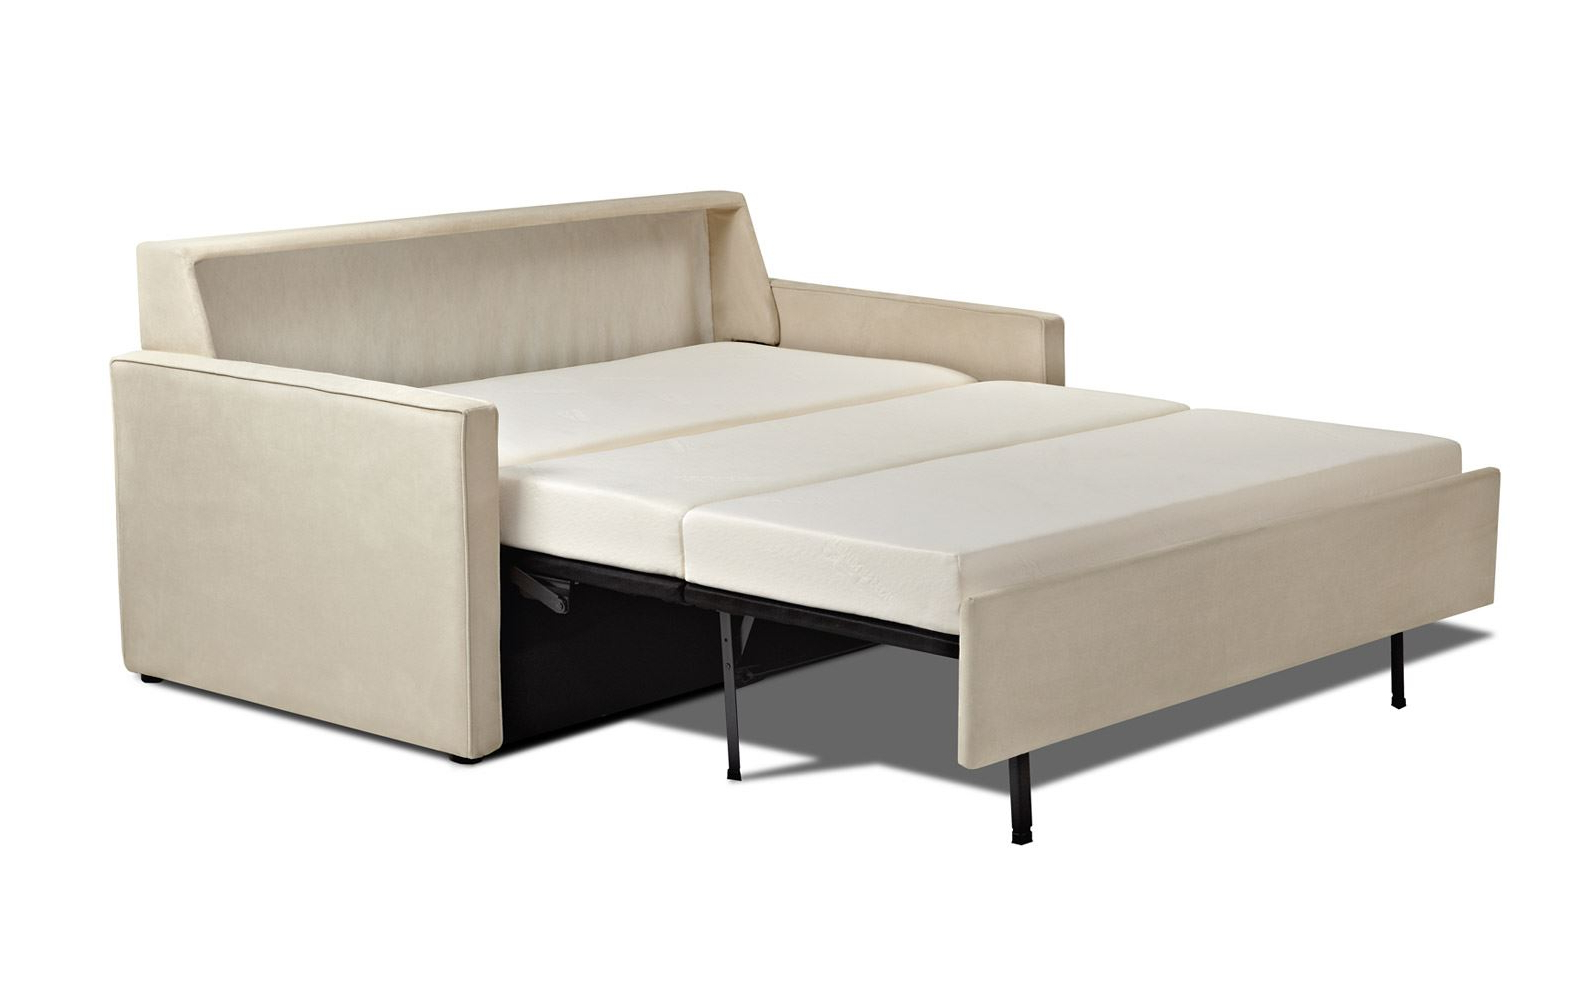 Famous Posh Tempurpedic Sofa Bed Design For Fashionable Within Felton Modern Style Pullout Sleeper Sofas Black (View 12 of 25)